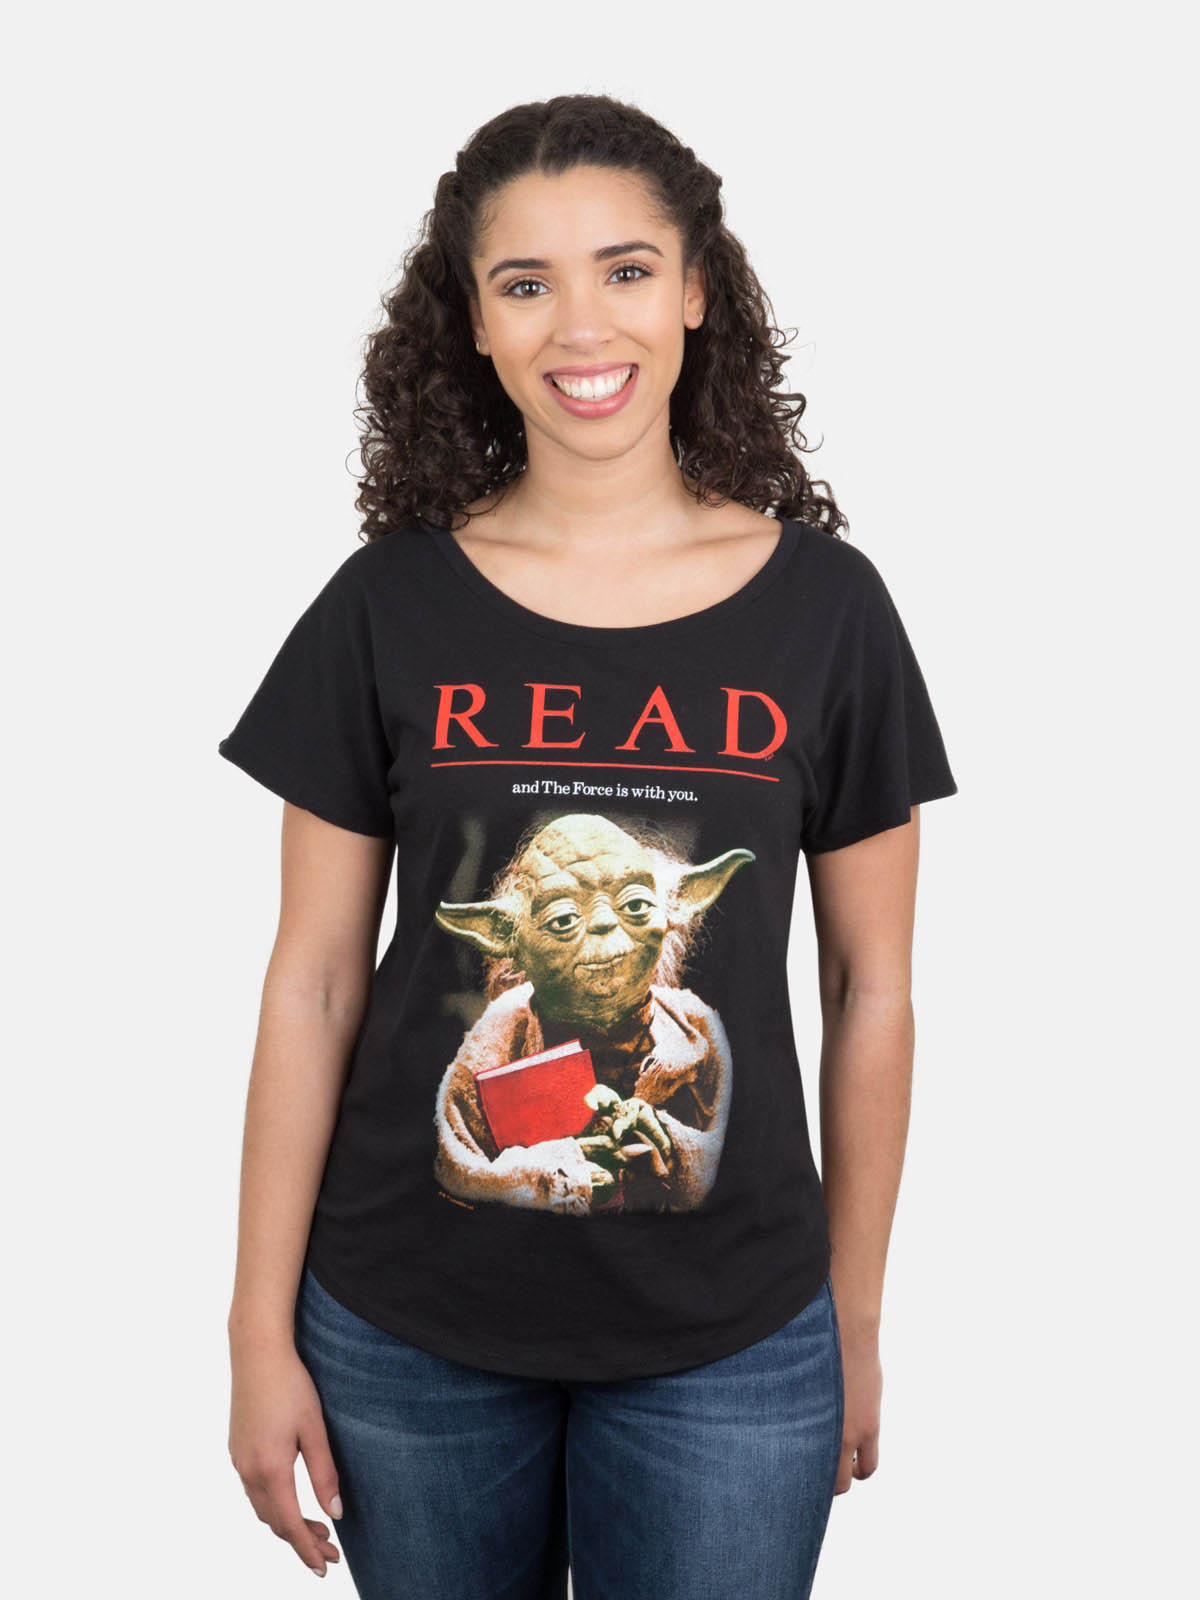 A new line from Out of Print Clothing showcases retro posters from the American Library Association.